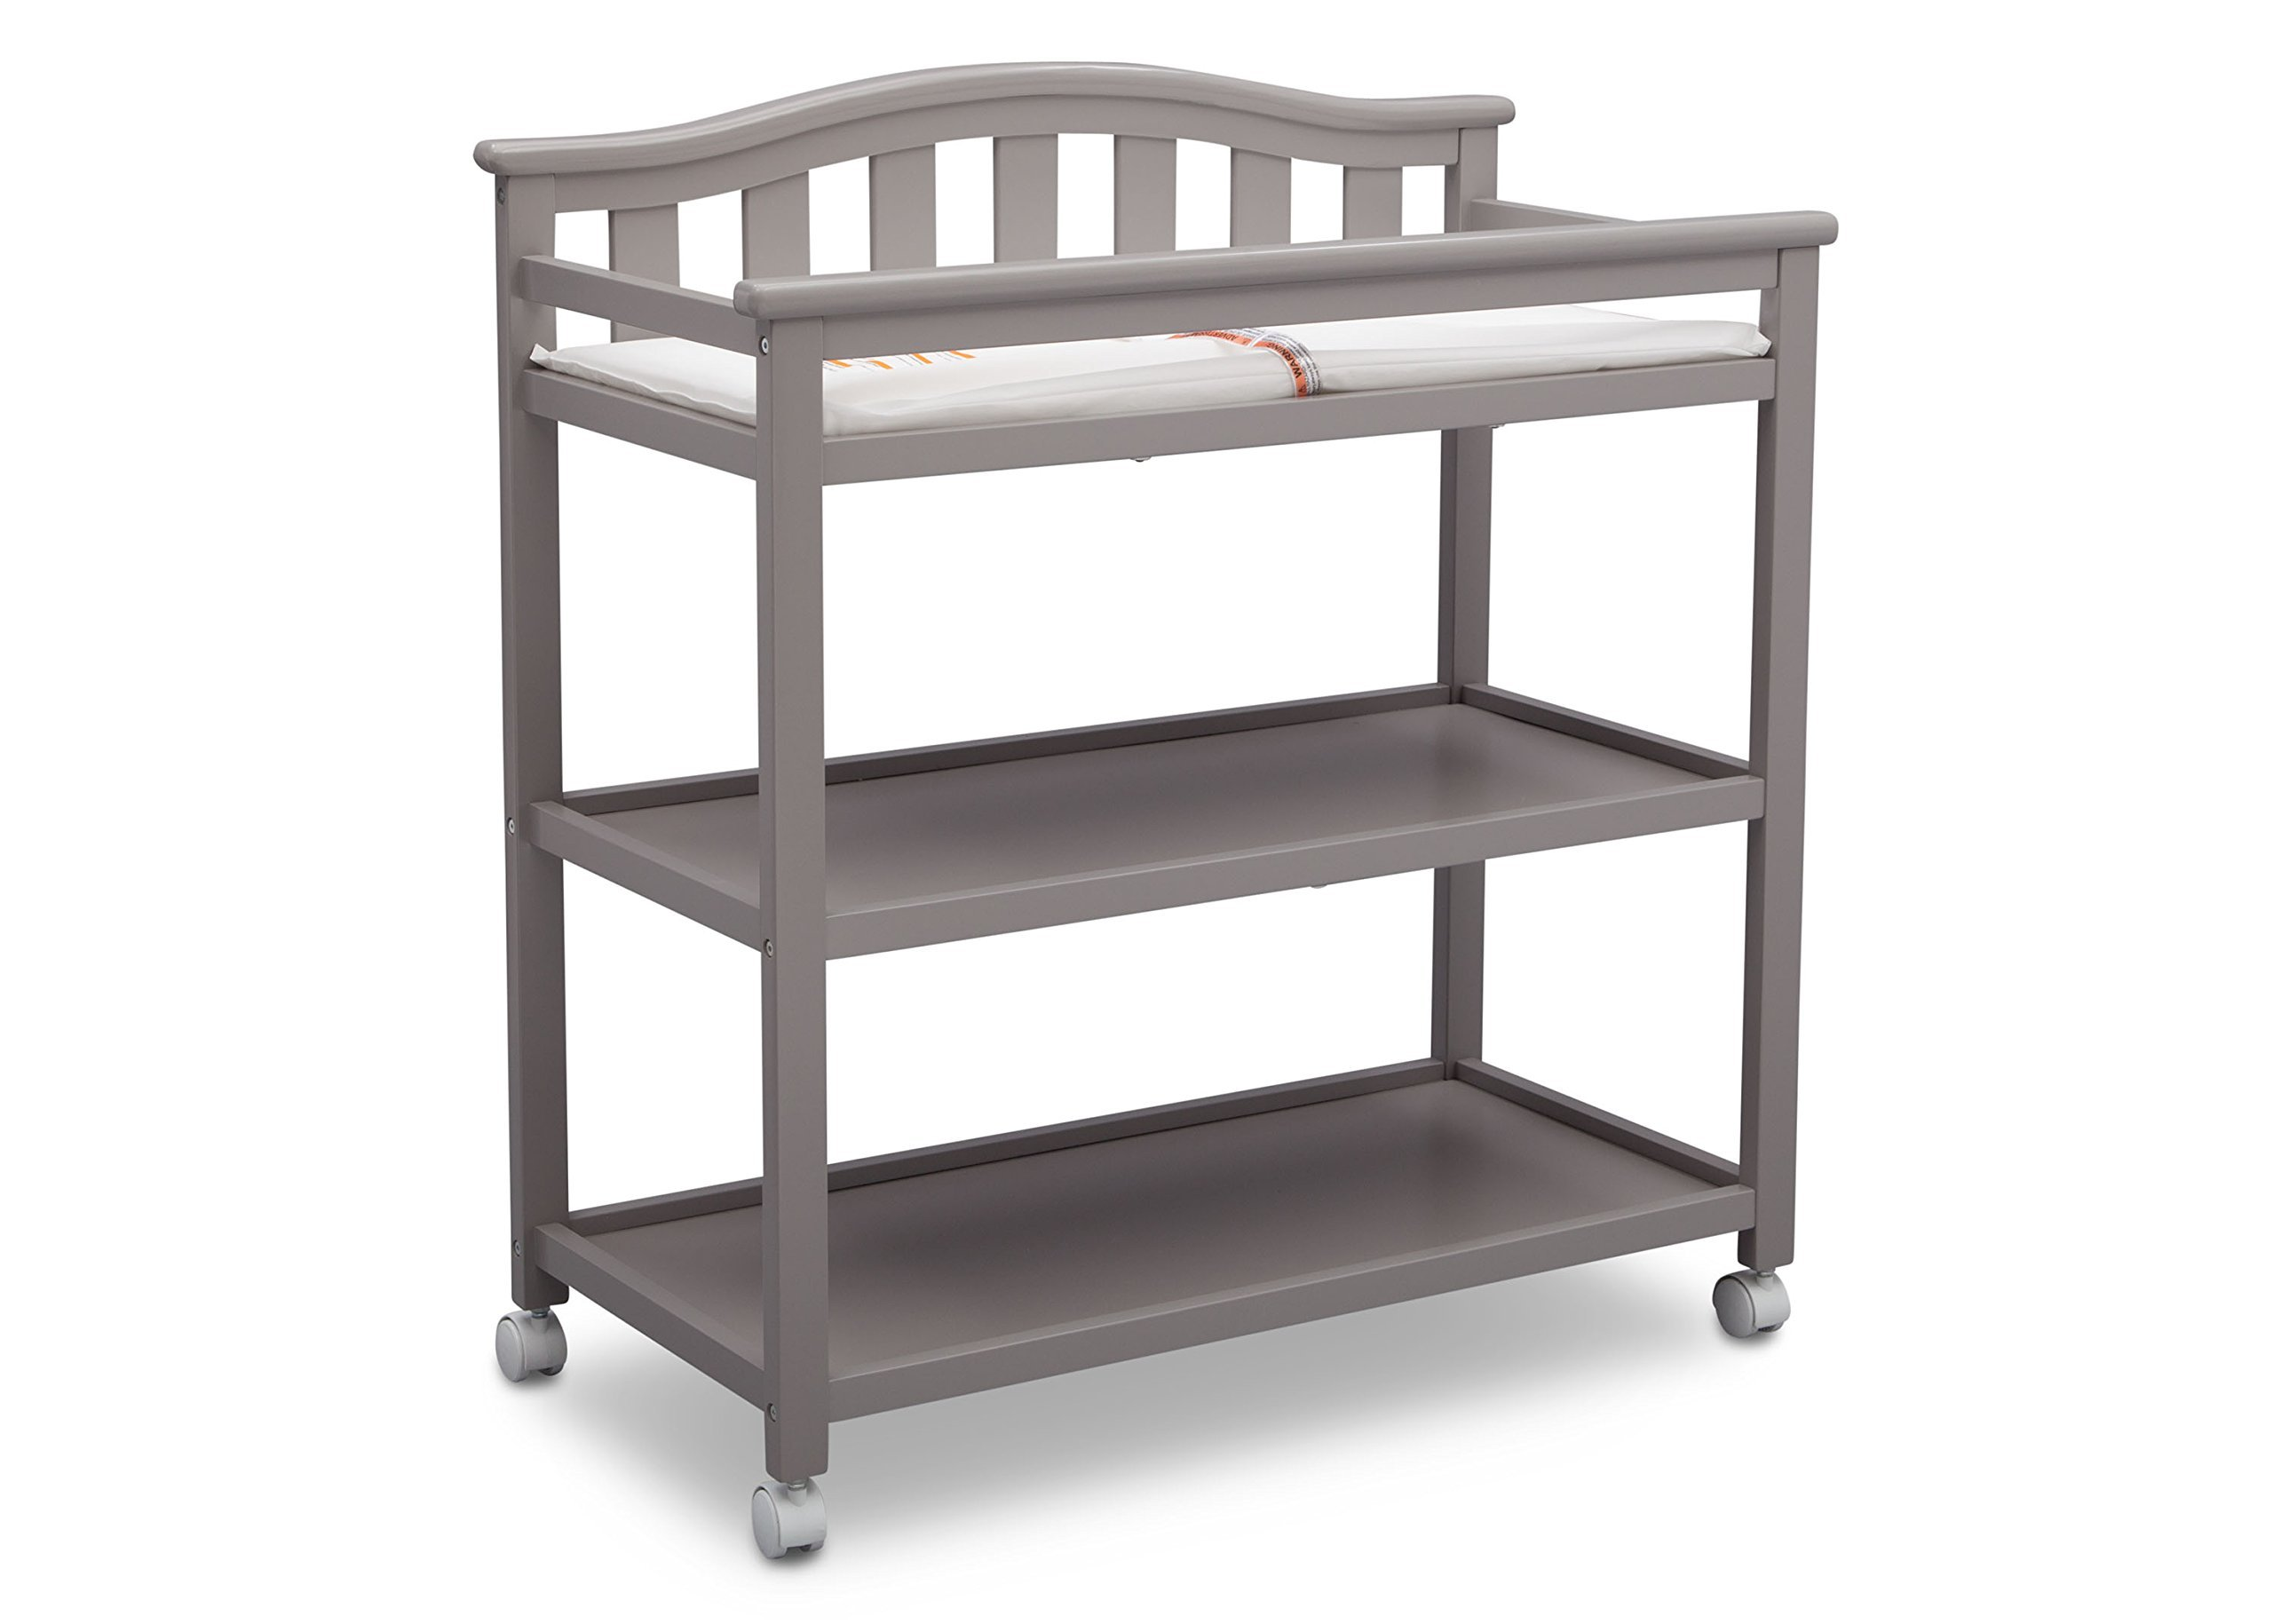 Delta Children Bell Top Changing Table with Casters, Grey by Delta Children (Image #2)